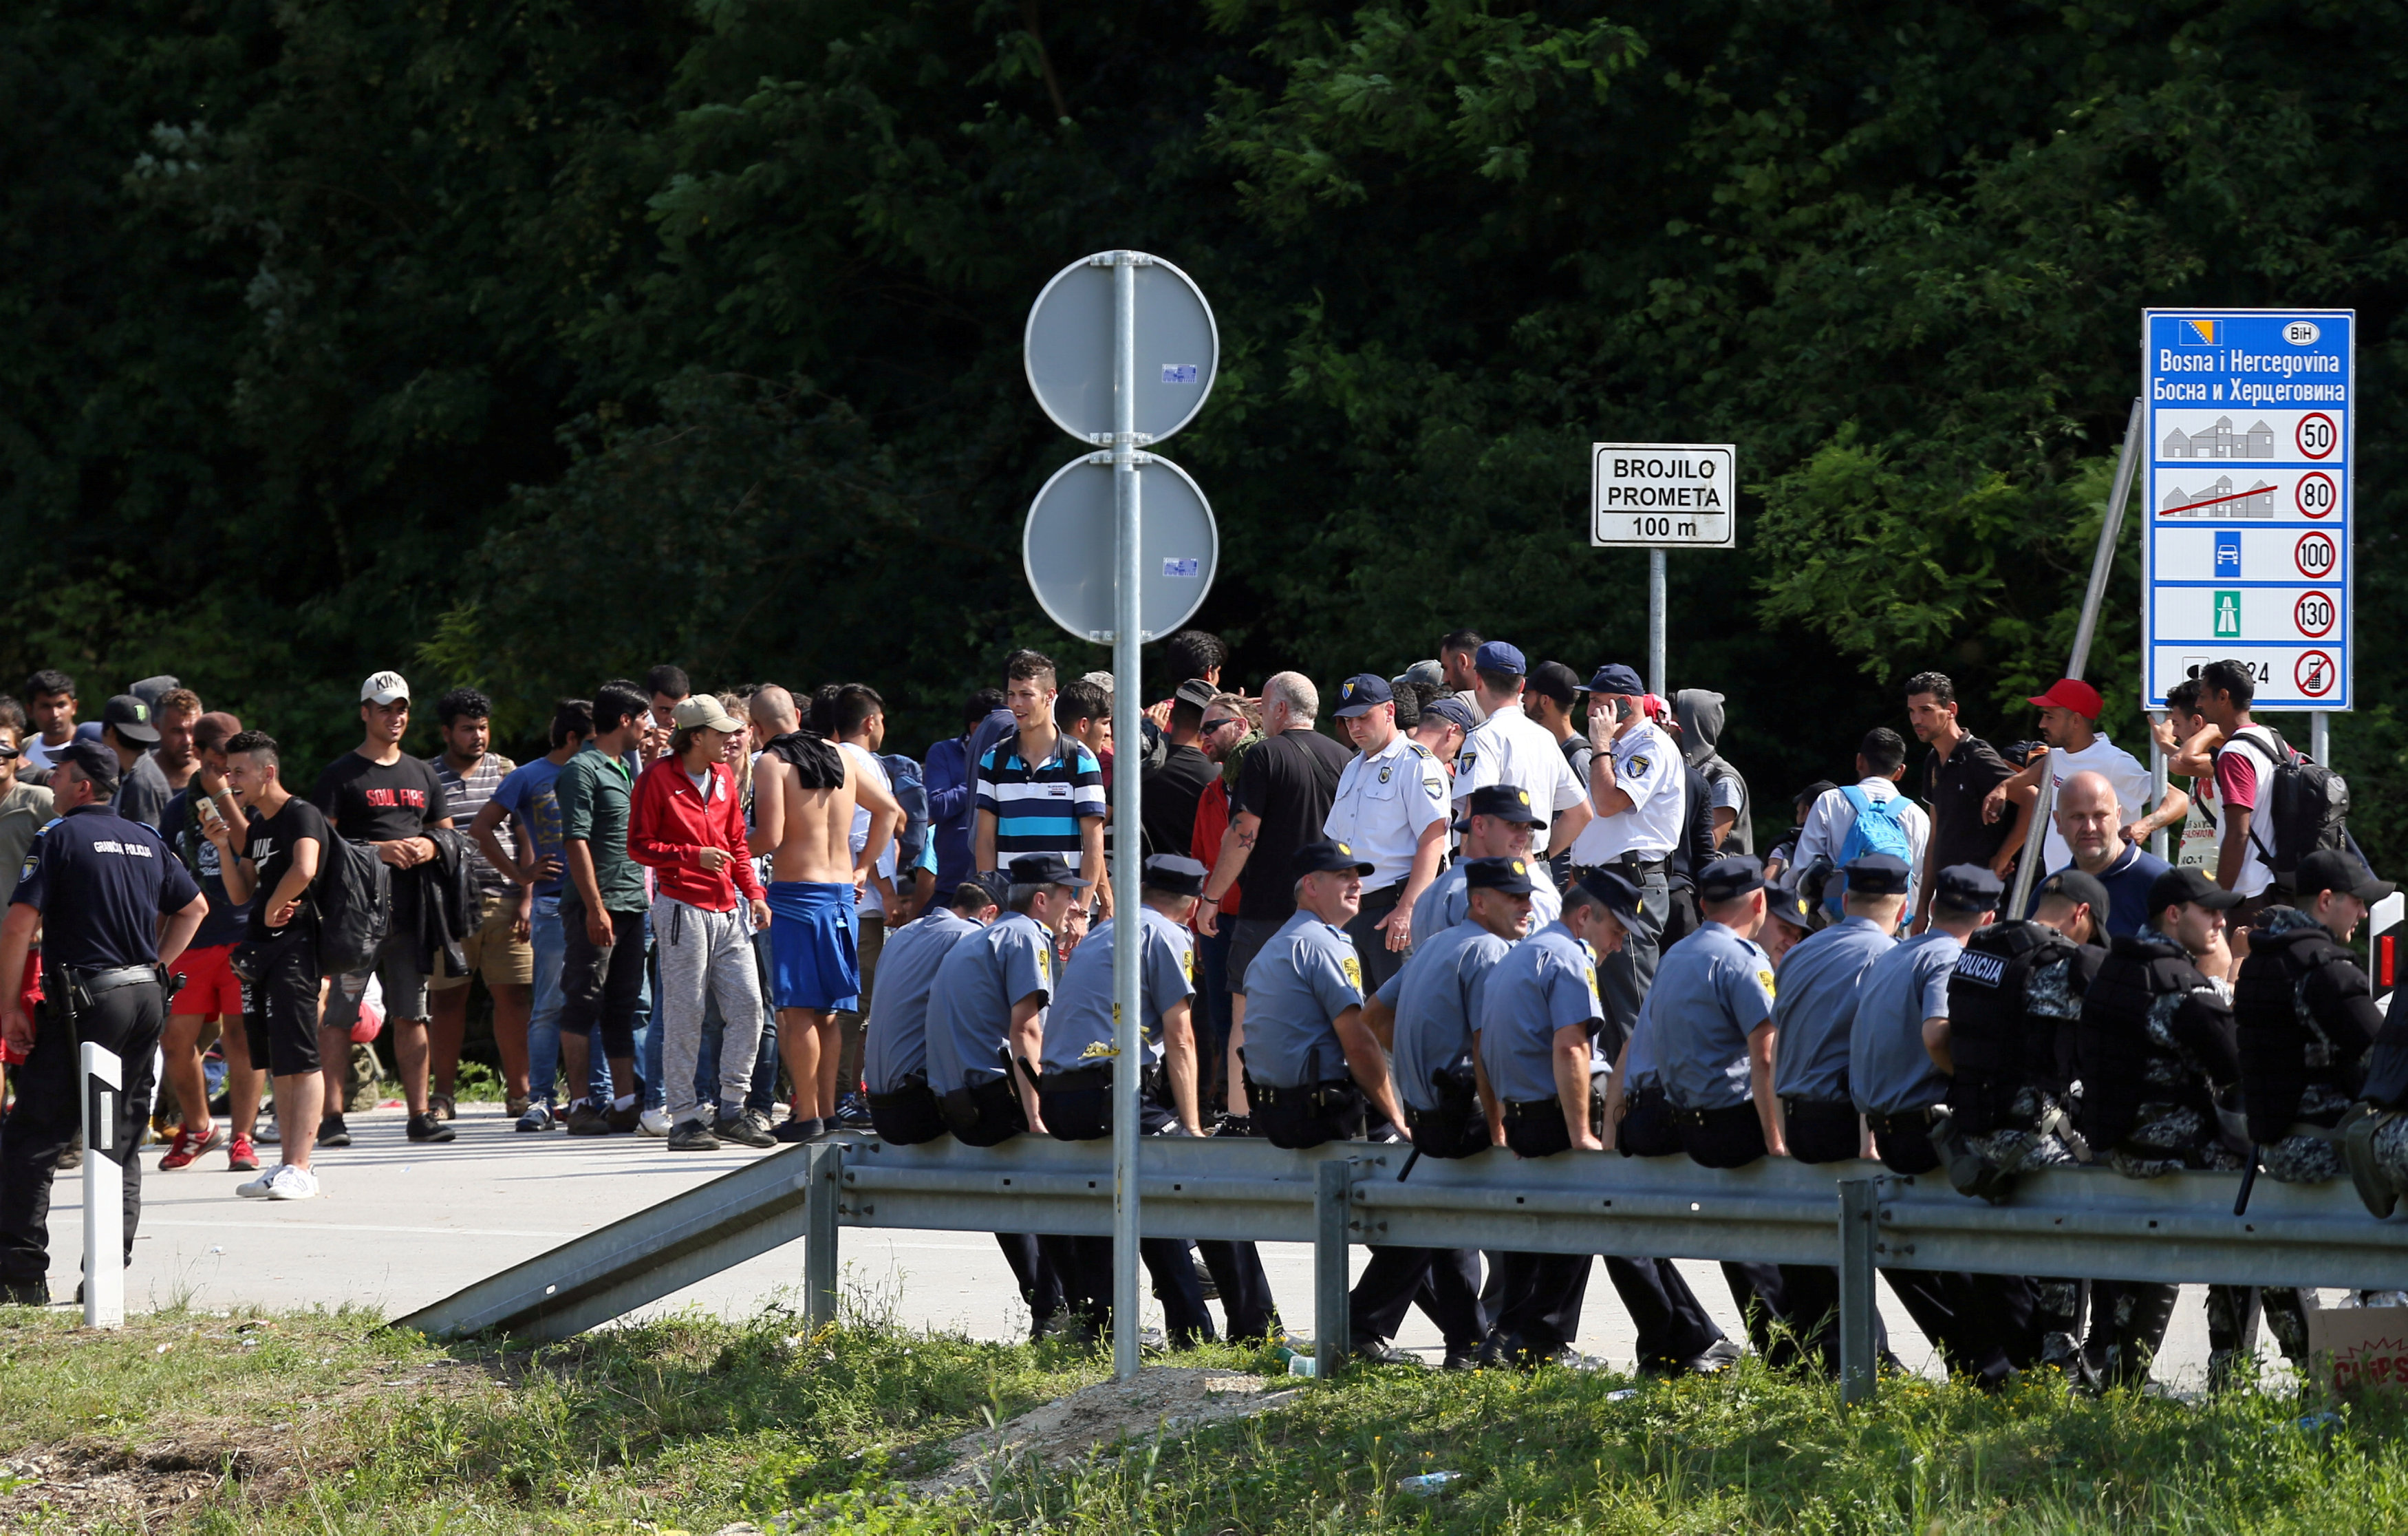 FILE PHOTO: Migrants and Bosnian police eye one another in Velika Kladusa, Bosnia, near the border with Croatia, June 18, 2018. REUTERS/Antonio Bronic/File Photo